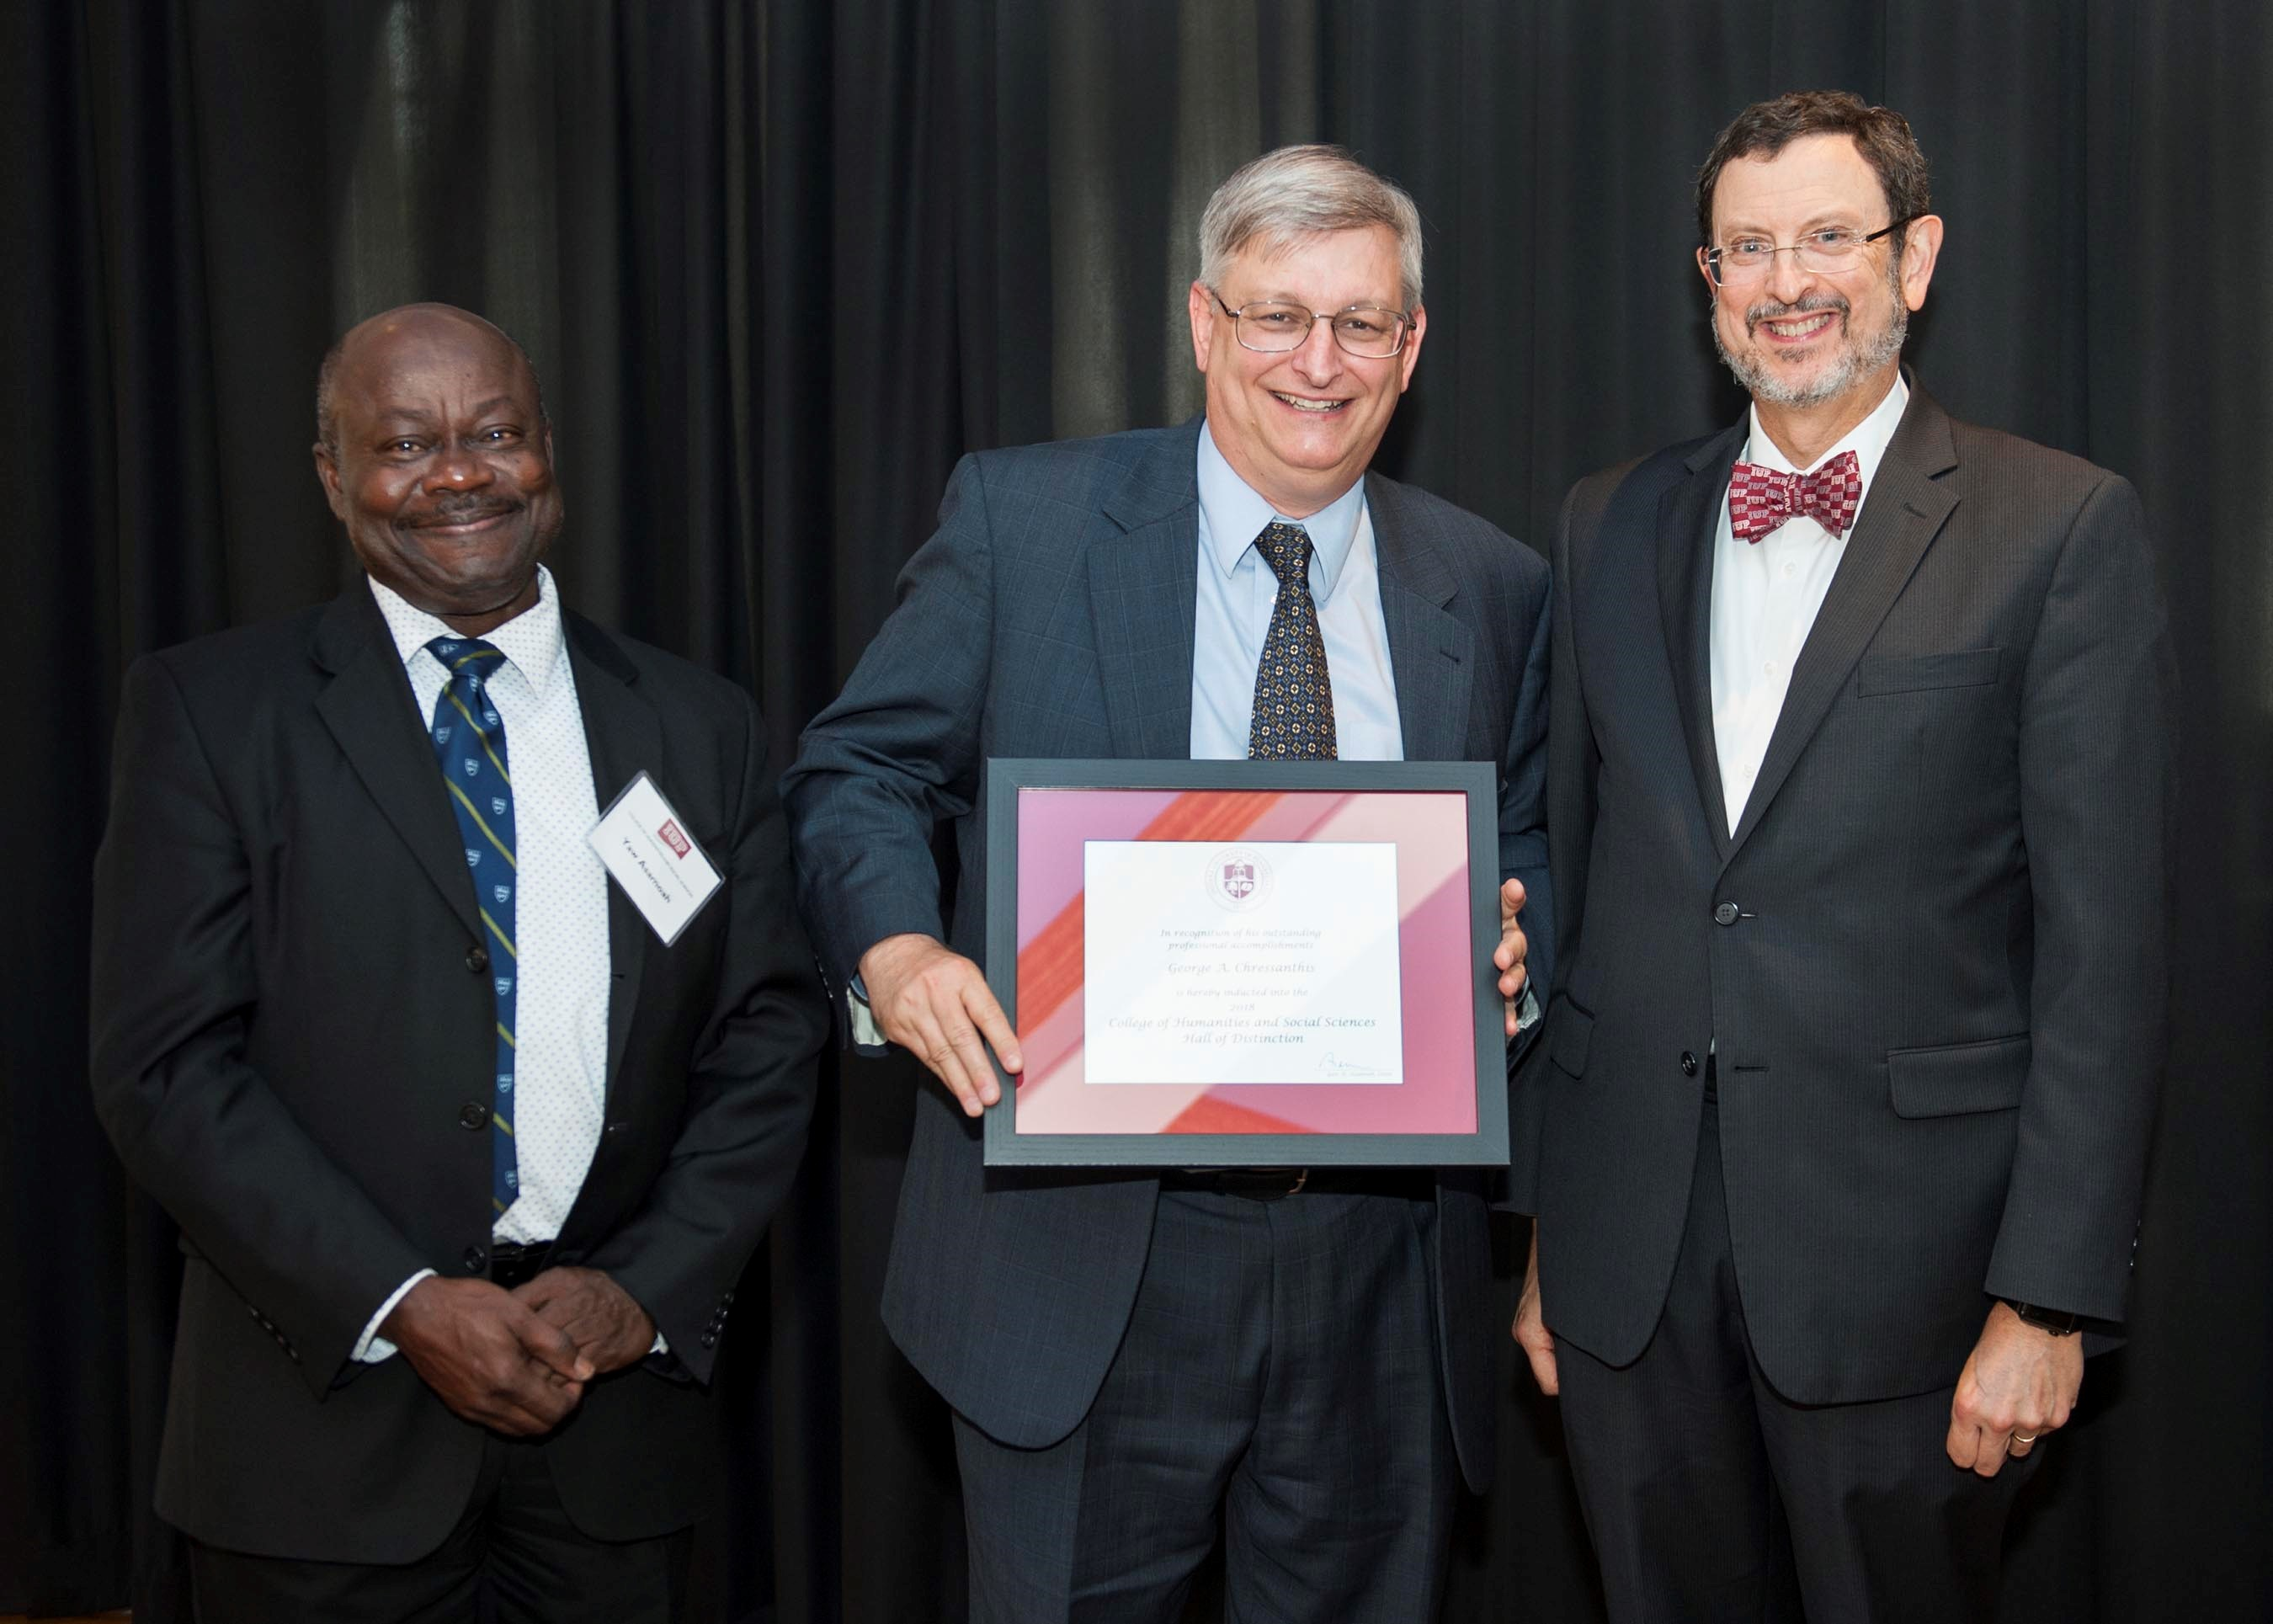 Dr. George A Chressanthis Is Inducted Into The Indiana University Of Pennsylvania CHSS Hall Of Distinction